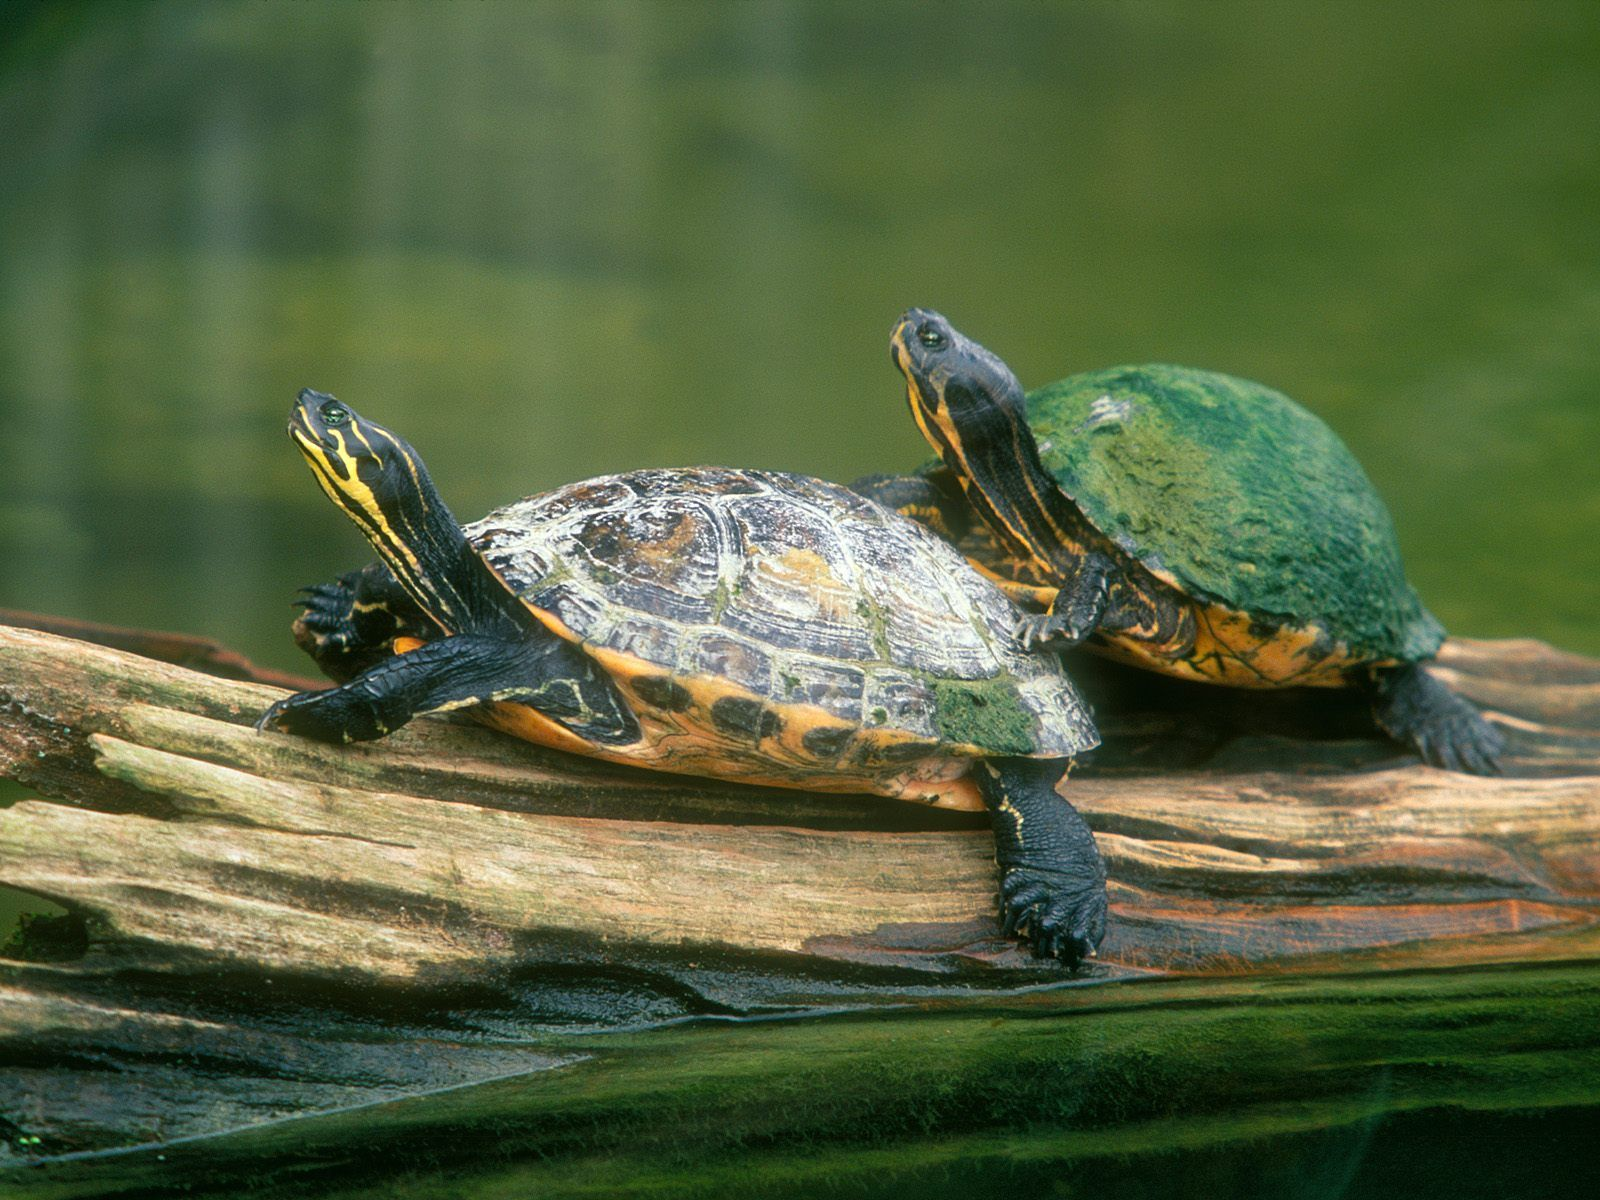 Turtles on a log 181 Turtle, Turtle images, Freshwater